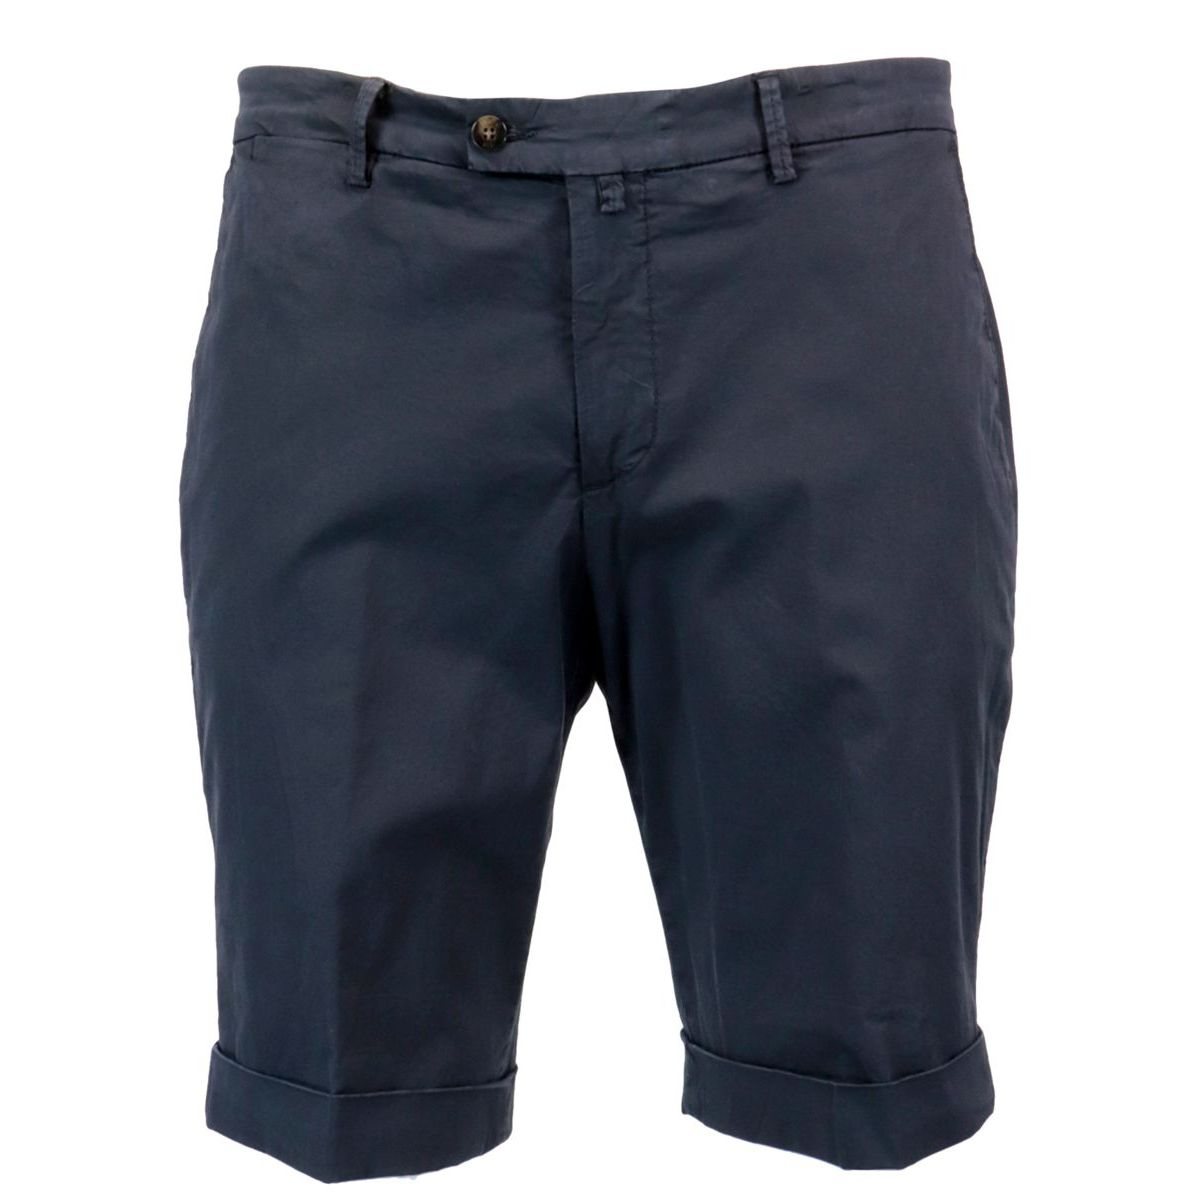 Cotton bermuda with solid color turn-up Navy Briglia